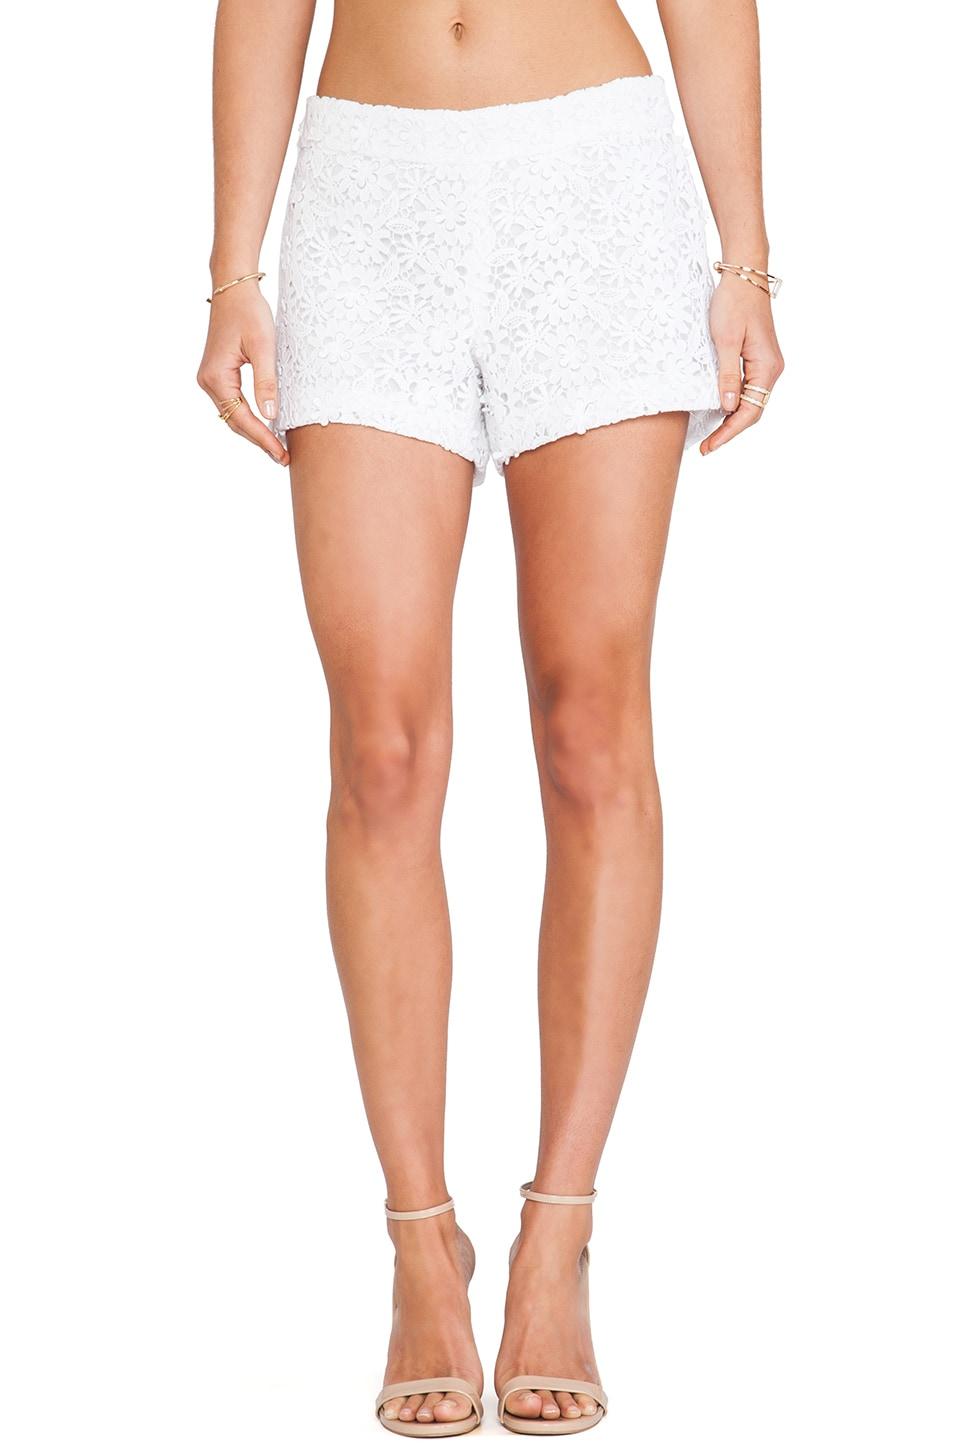 Alice + Olivia Crochet Lace Shorts in White